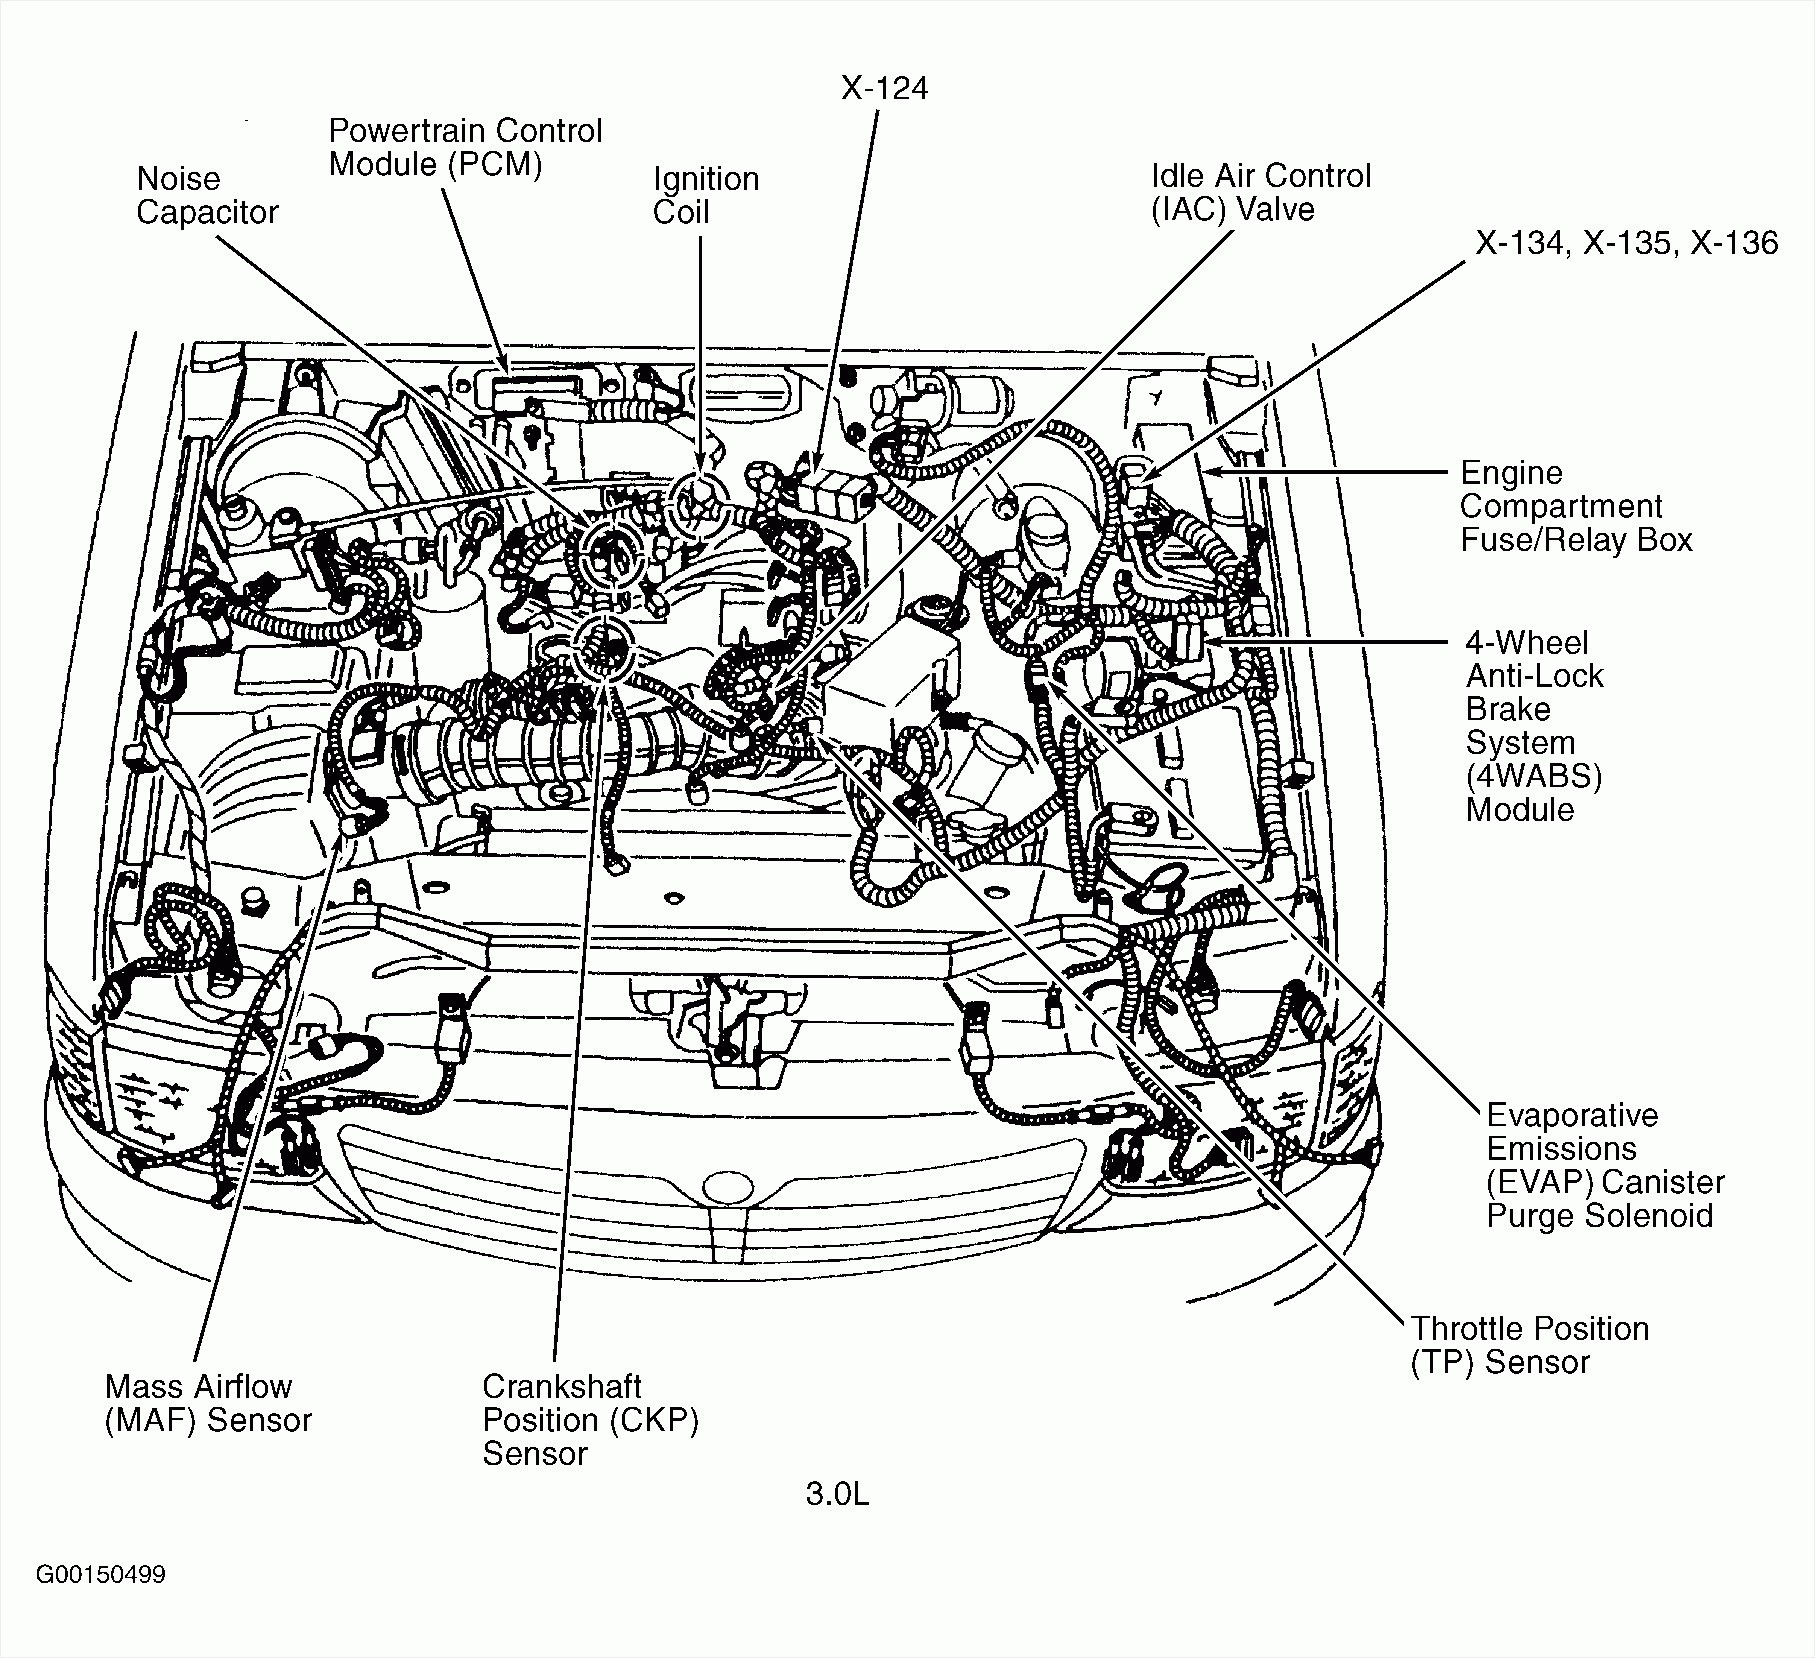 subaru outback trailer wiring diagram subaru outback 1999 wiring diagram mx5 engine bay diagram my wiring diagram